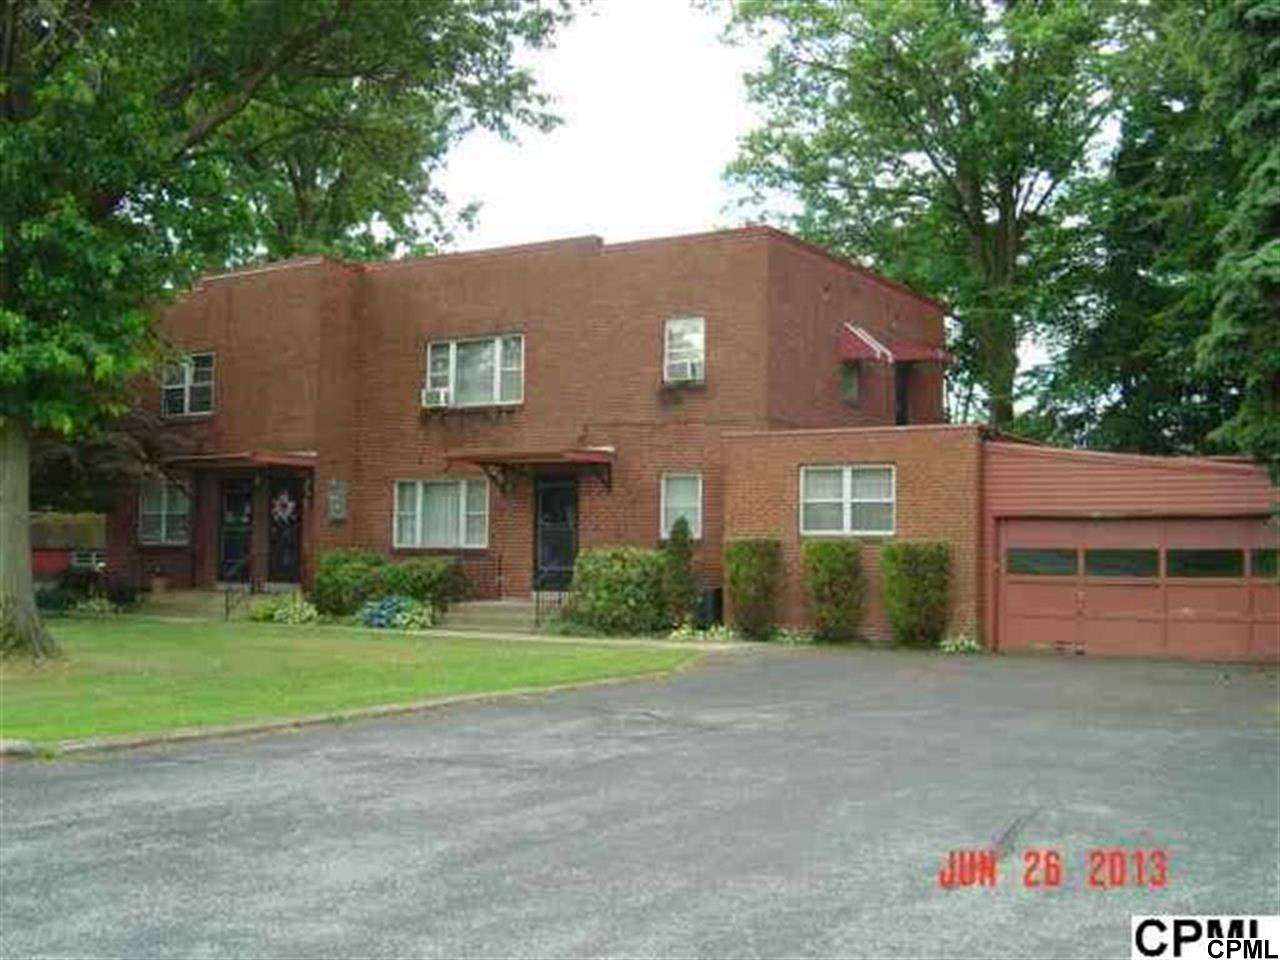 Rental Homes for Rent, ListingId:26797158, location: 25 Old Depot Road New Cumberland 17070